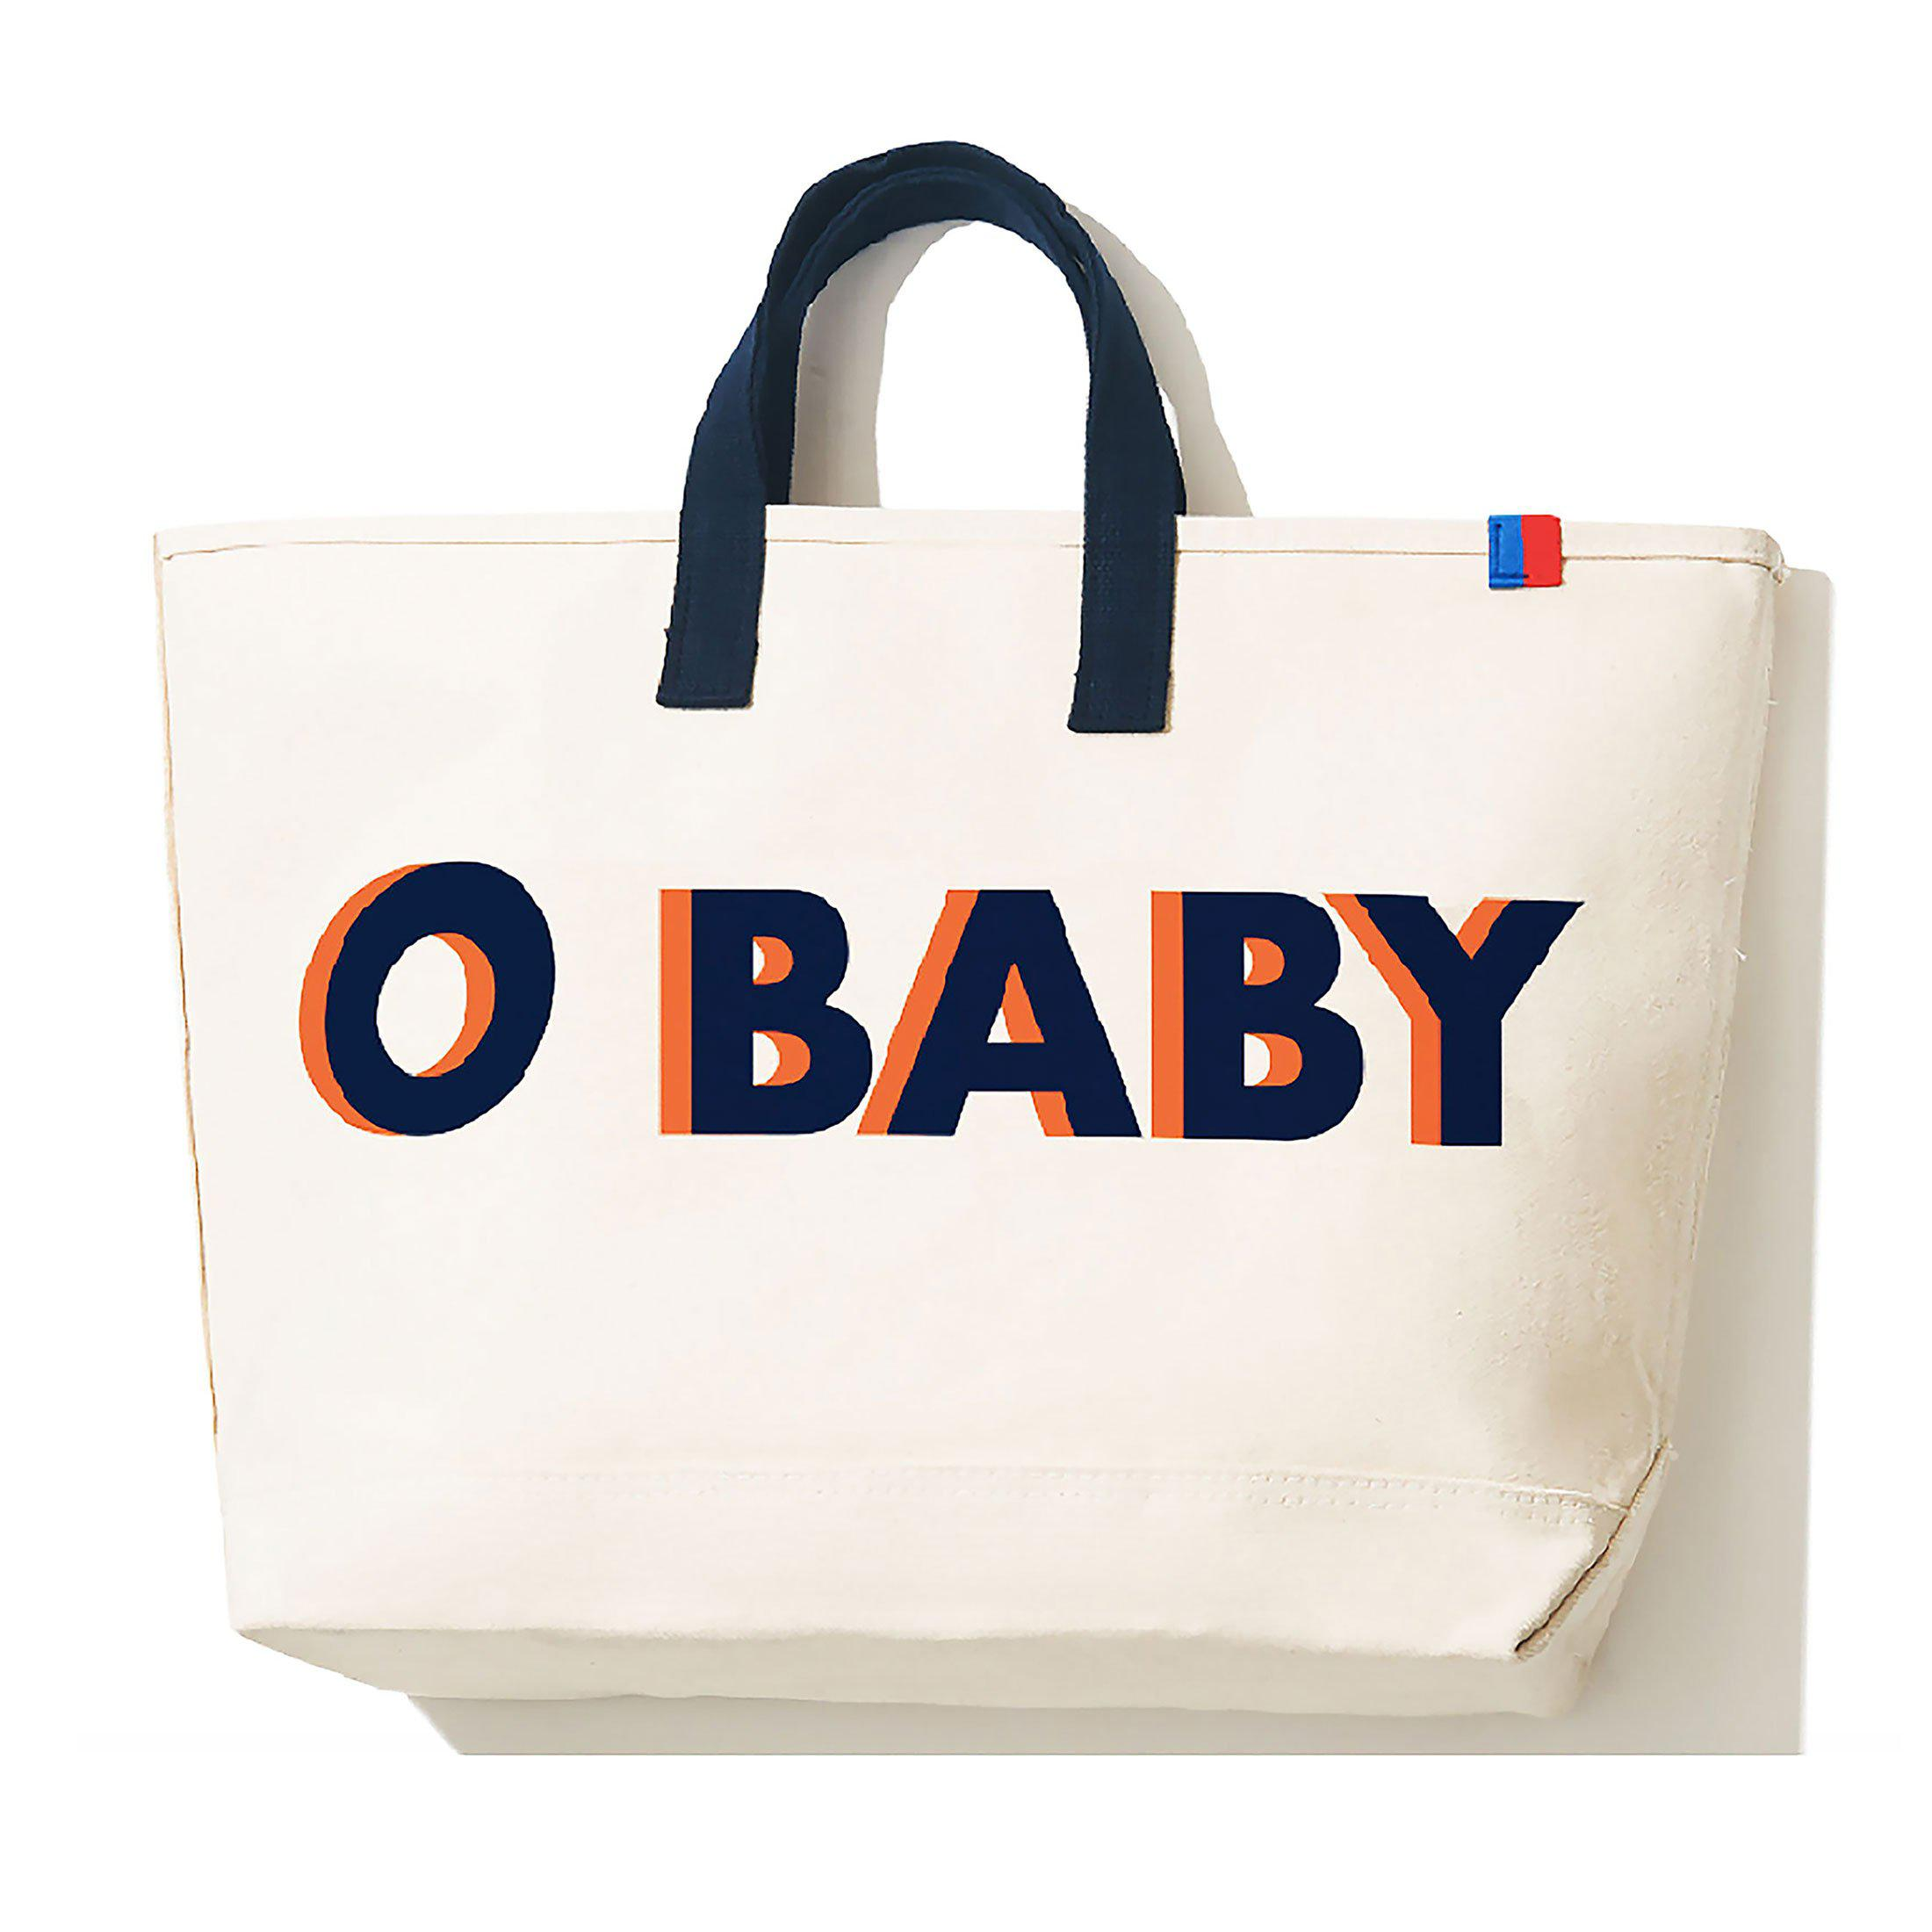 The O BABY Tote - Canvas